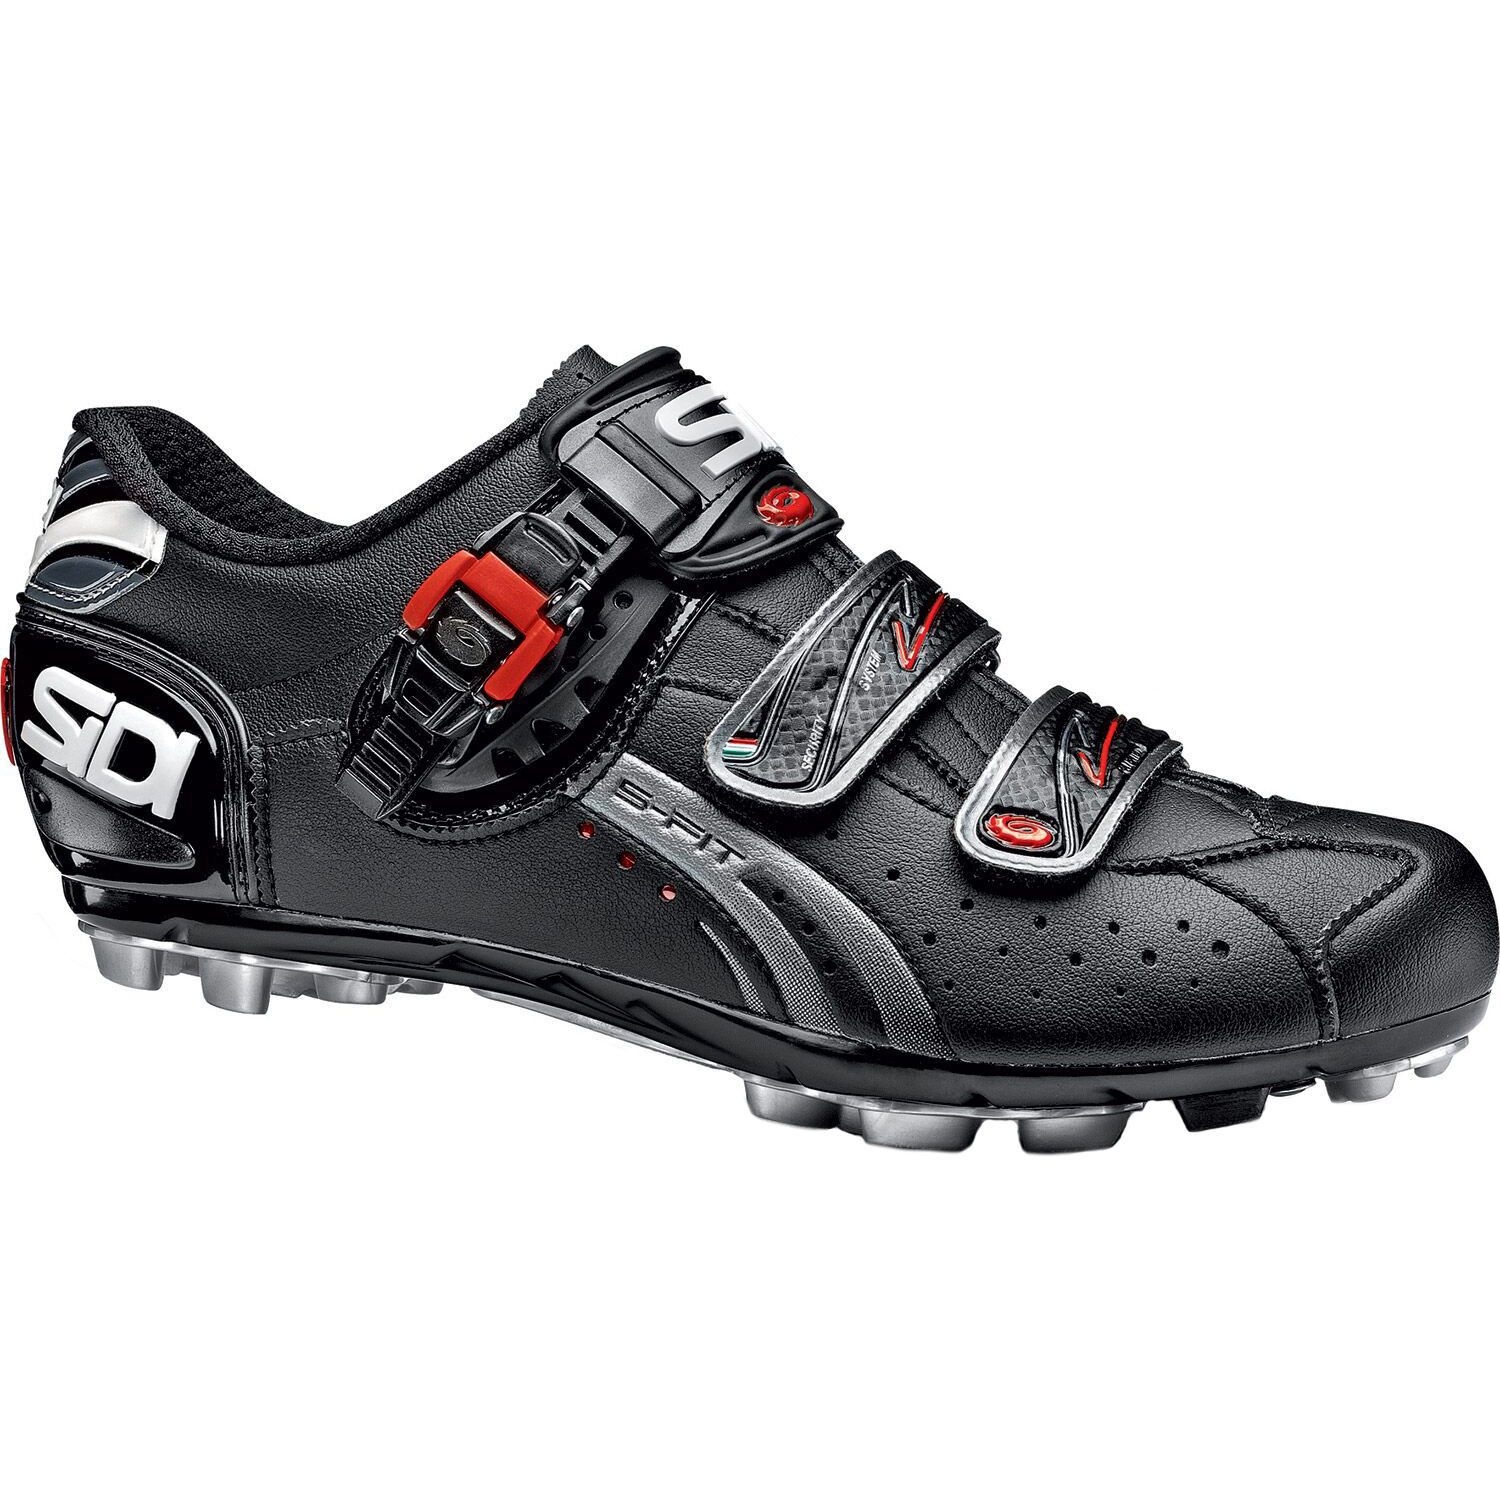 Wiggle | Sidi Dominator 5-Fit MTB Shoe